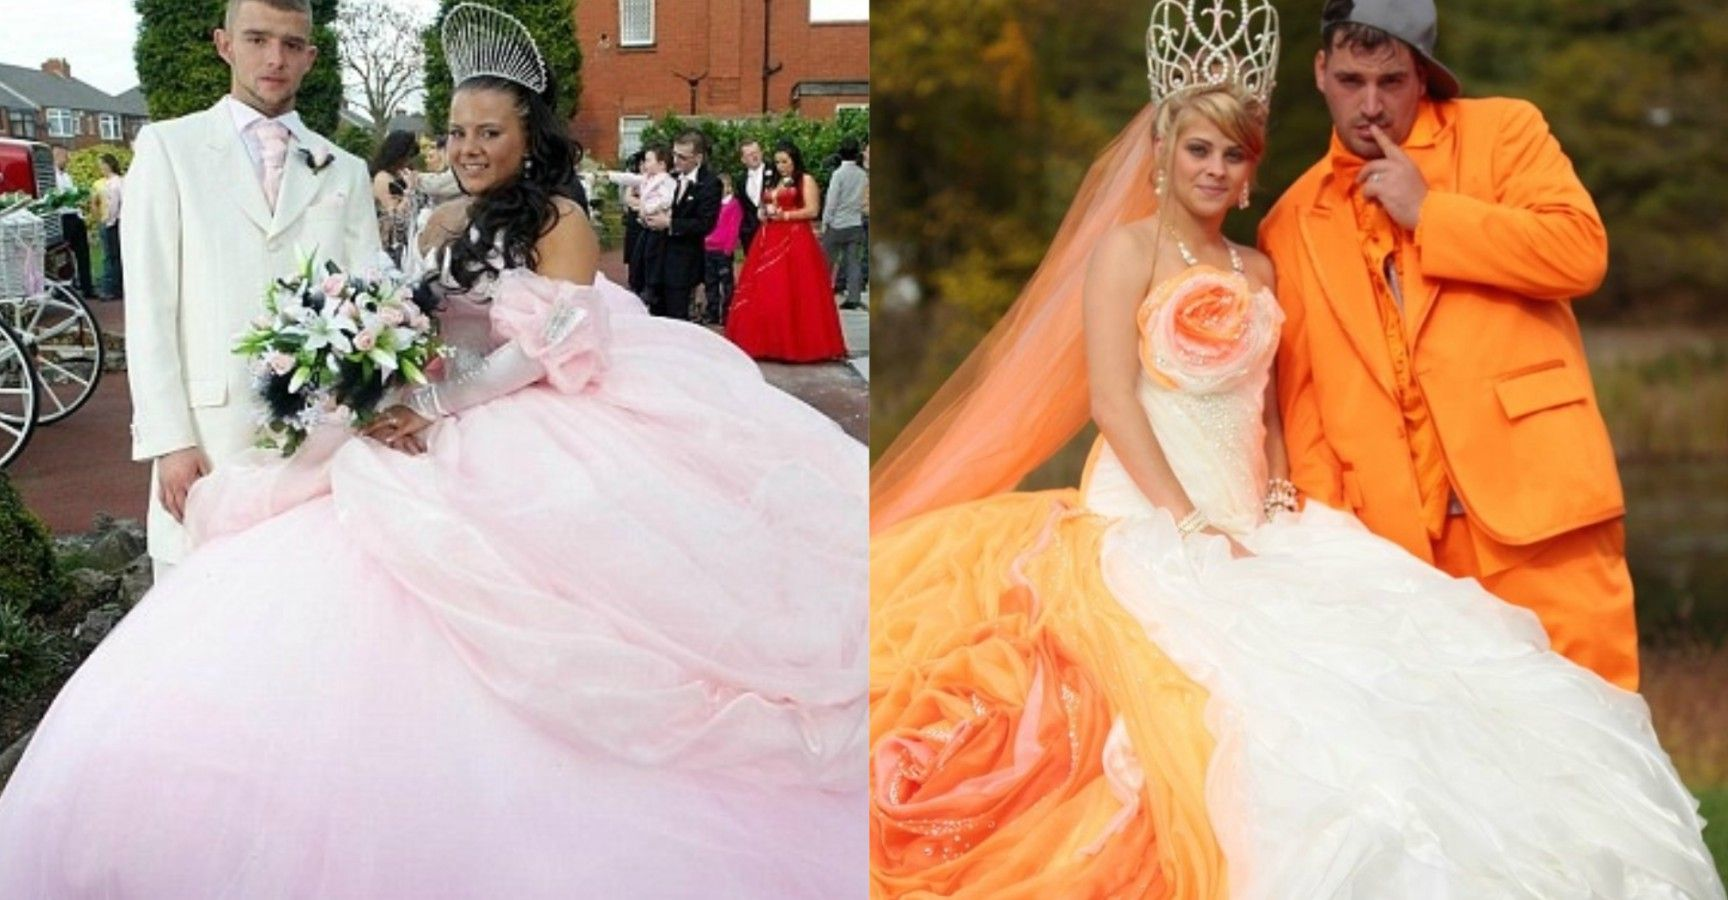 25 My Big Fat Gypsy Wedding Brides Who Have Never Heard Of The